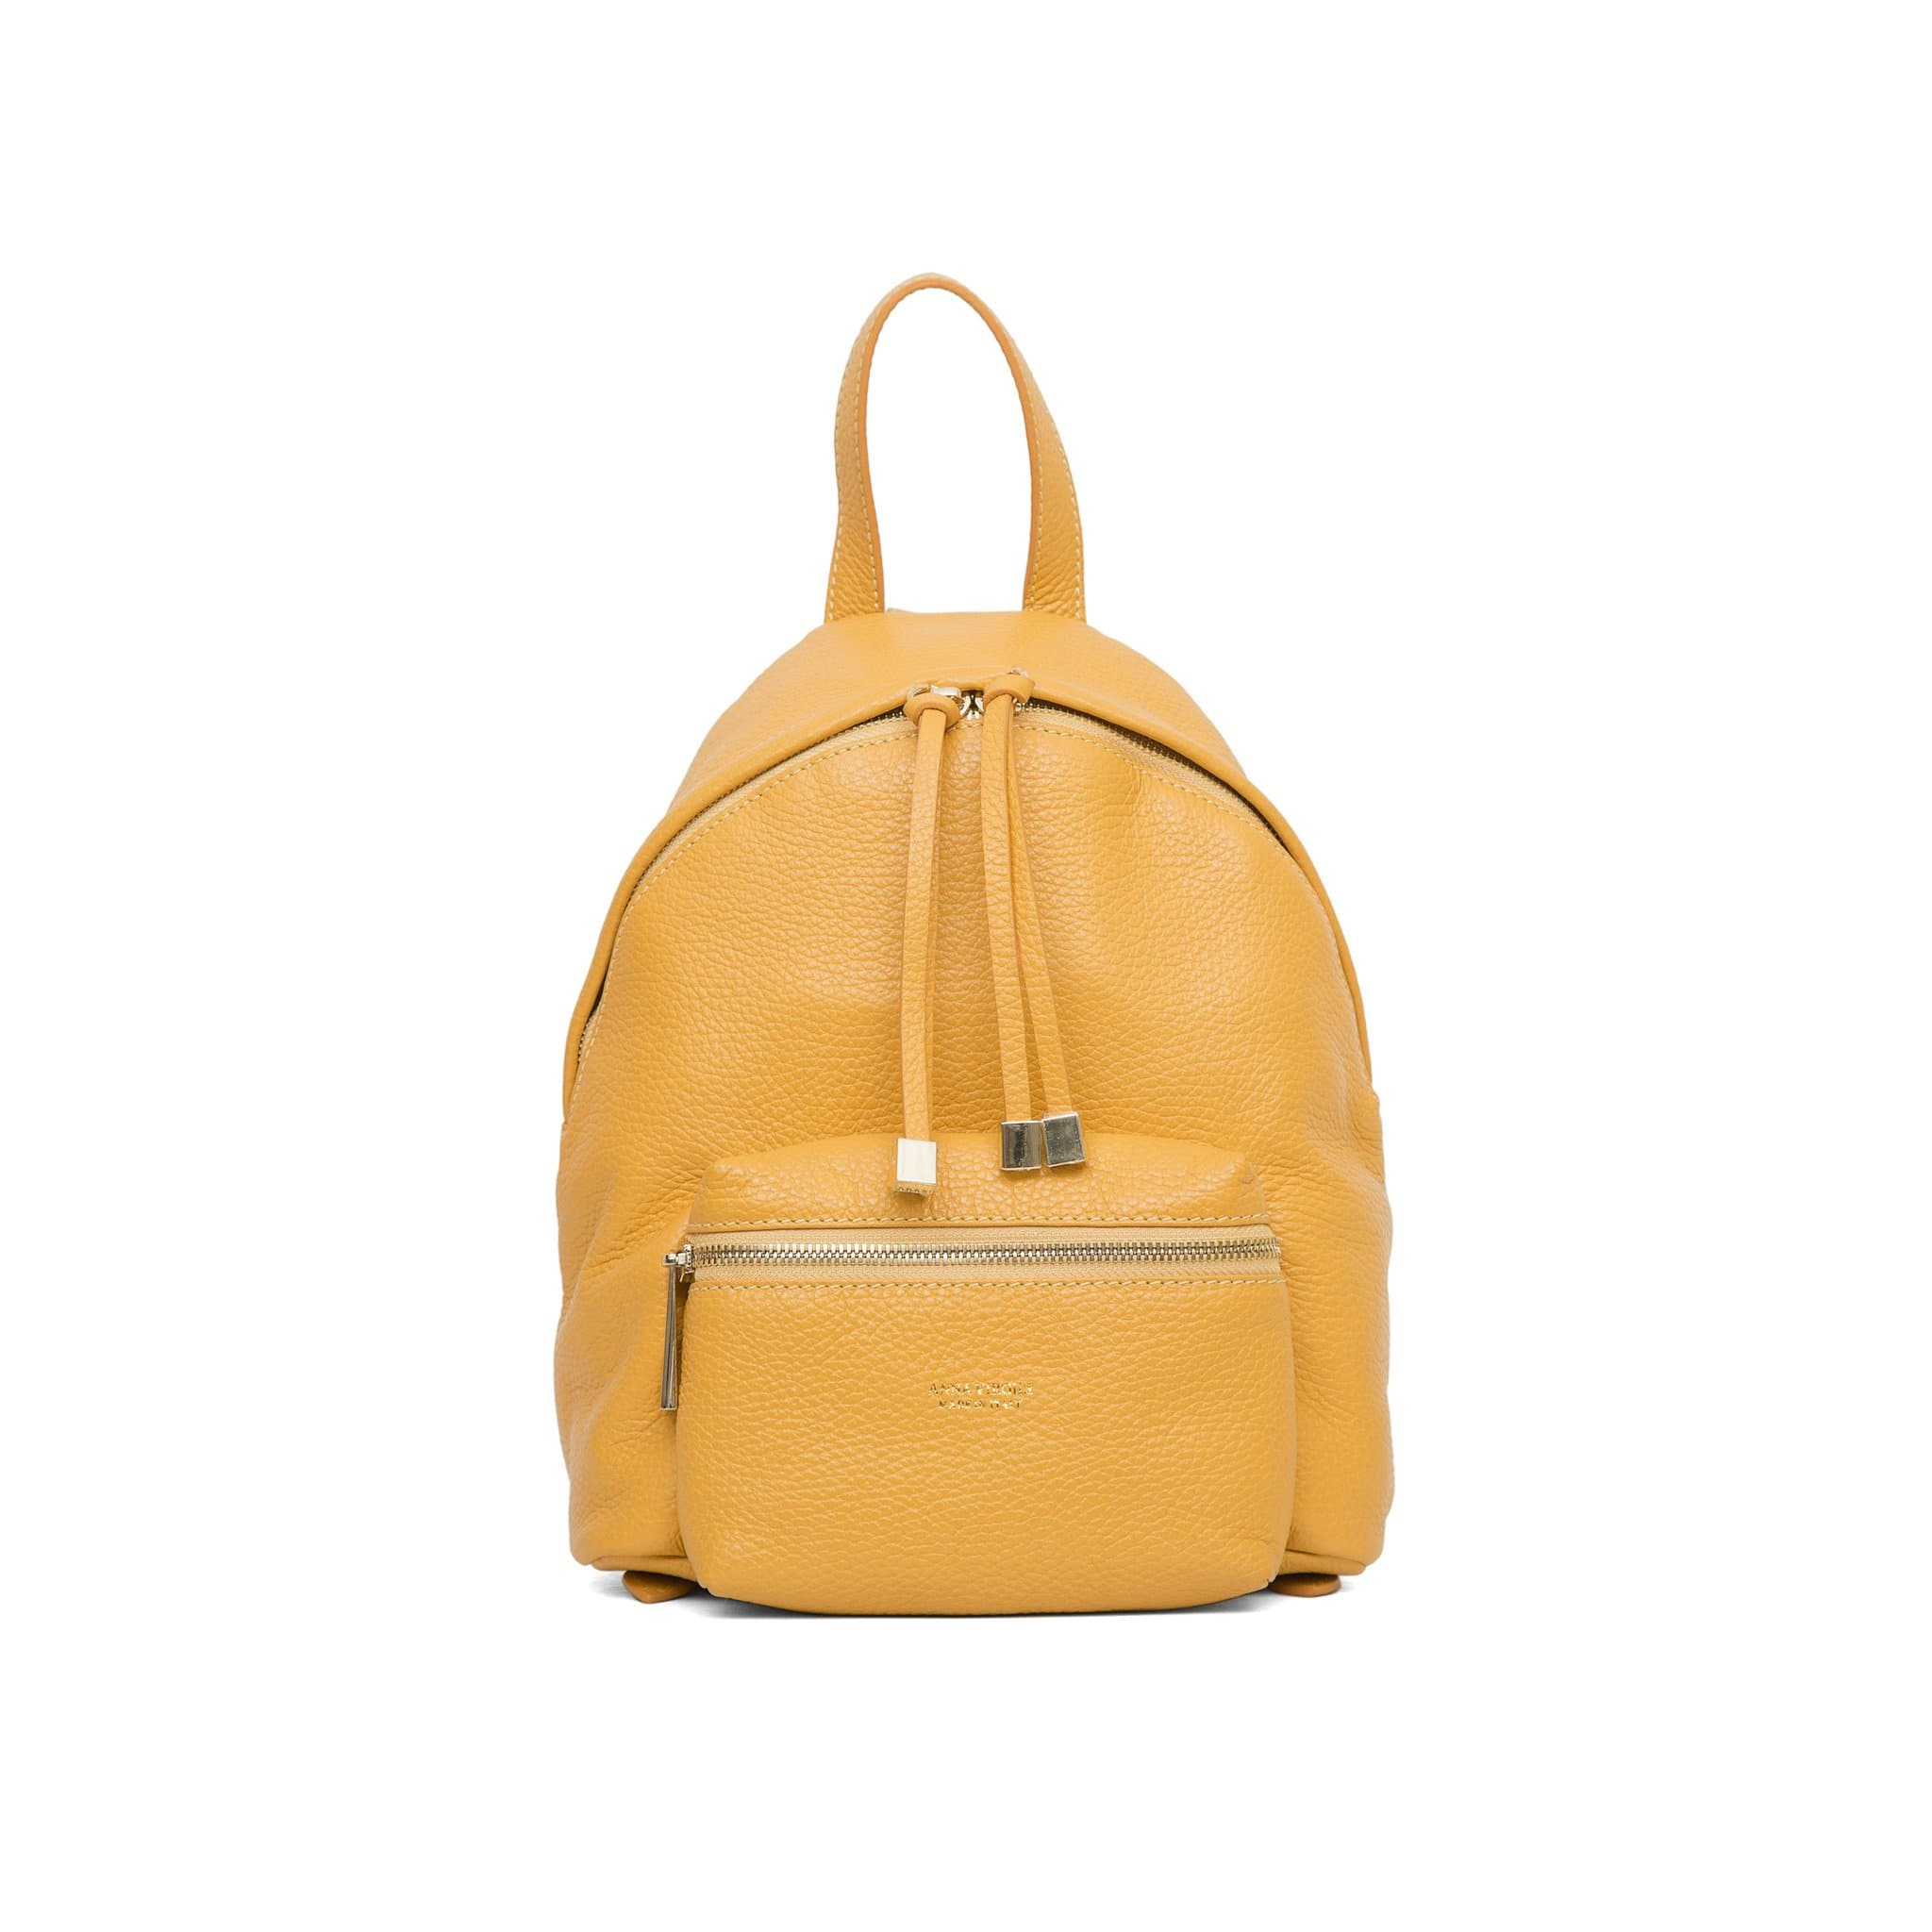 Alessia Rimini Leather Backpack - Ochre